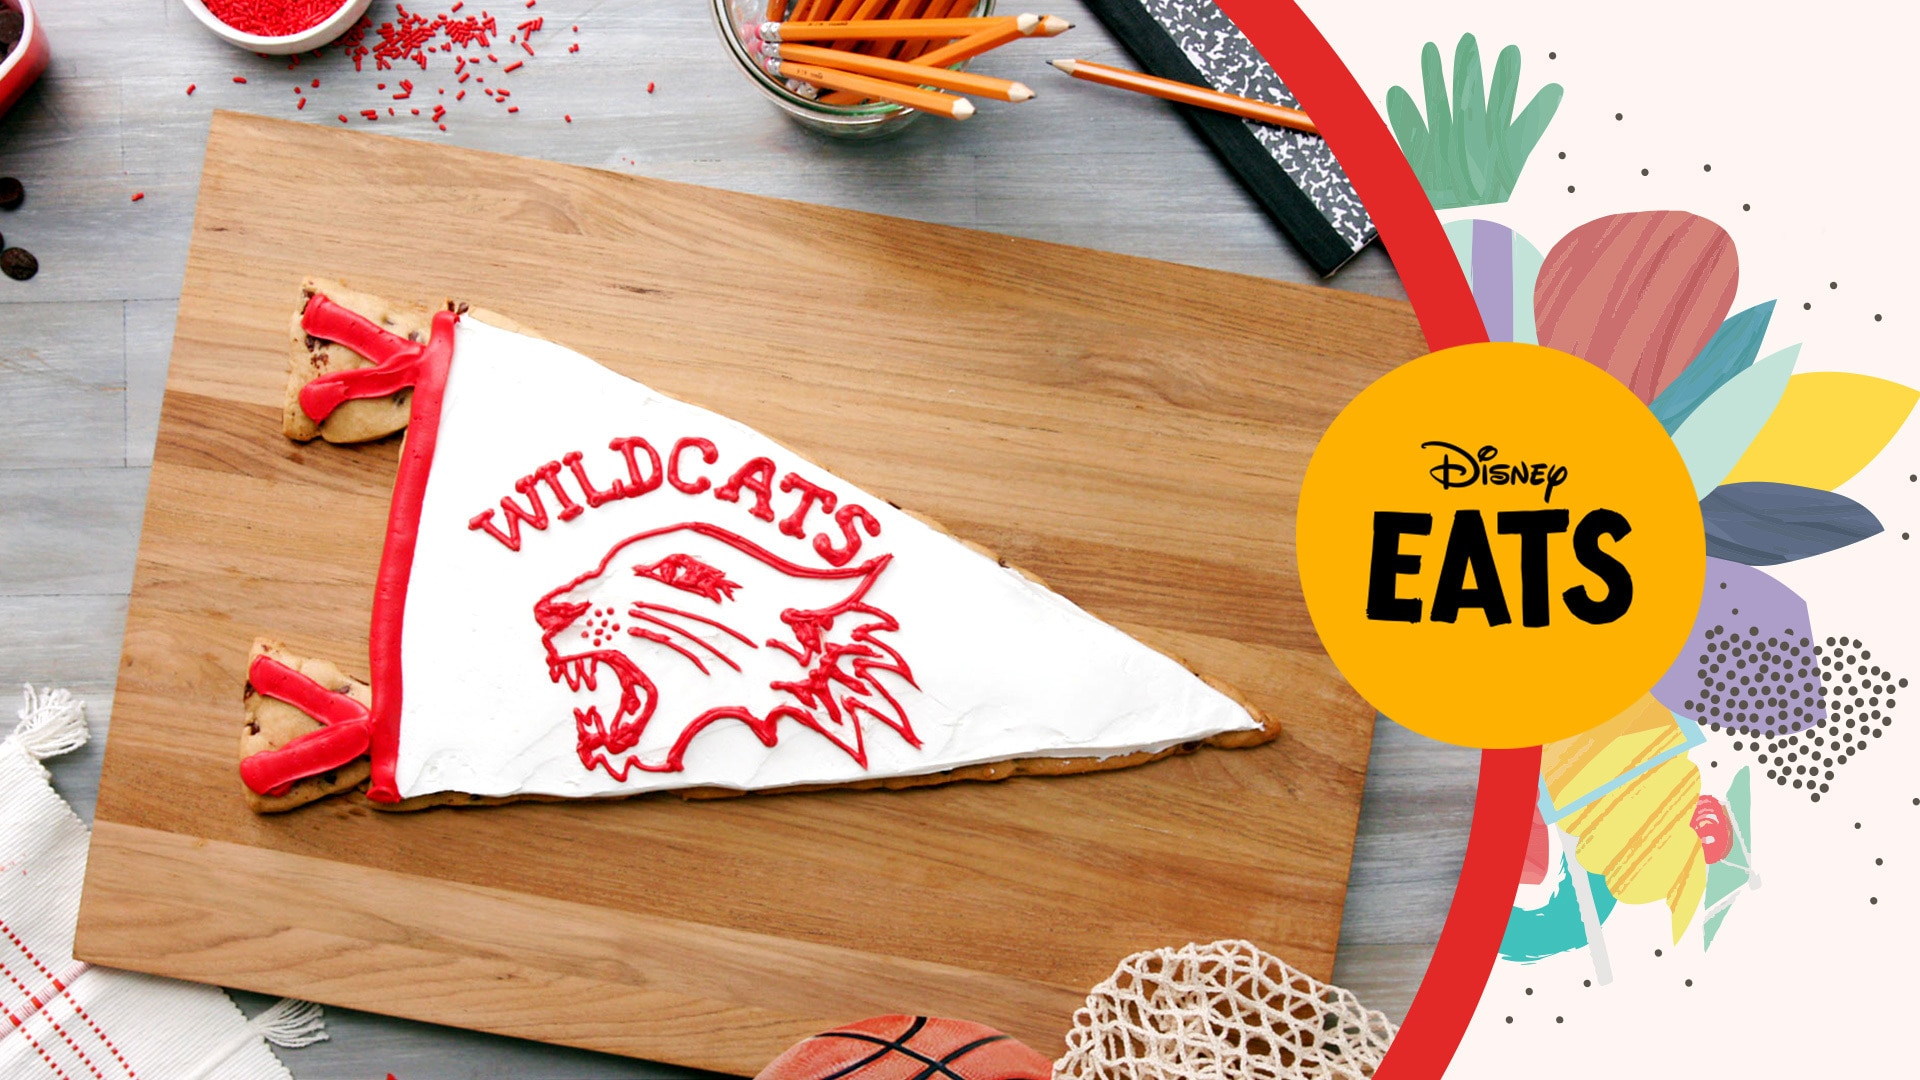 Wildcats Cookie Cake | Disney Eats